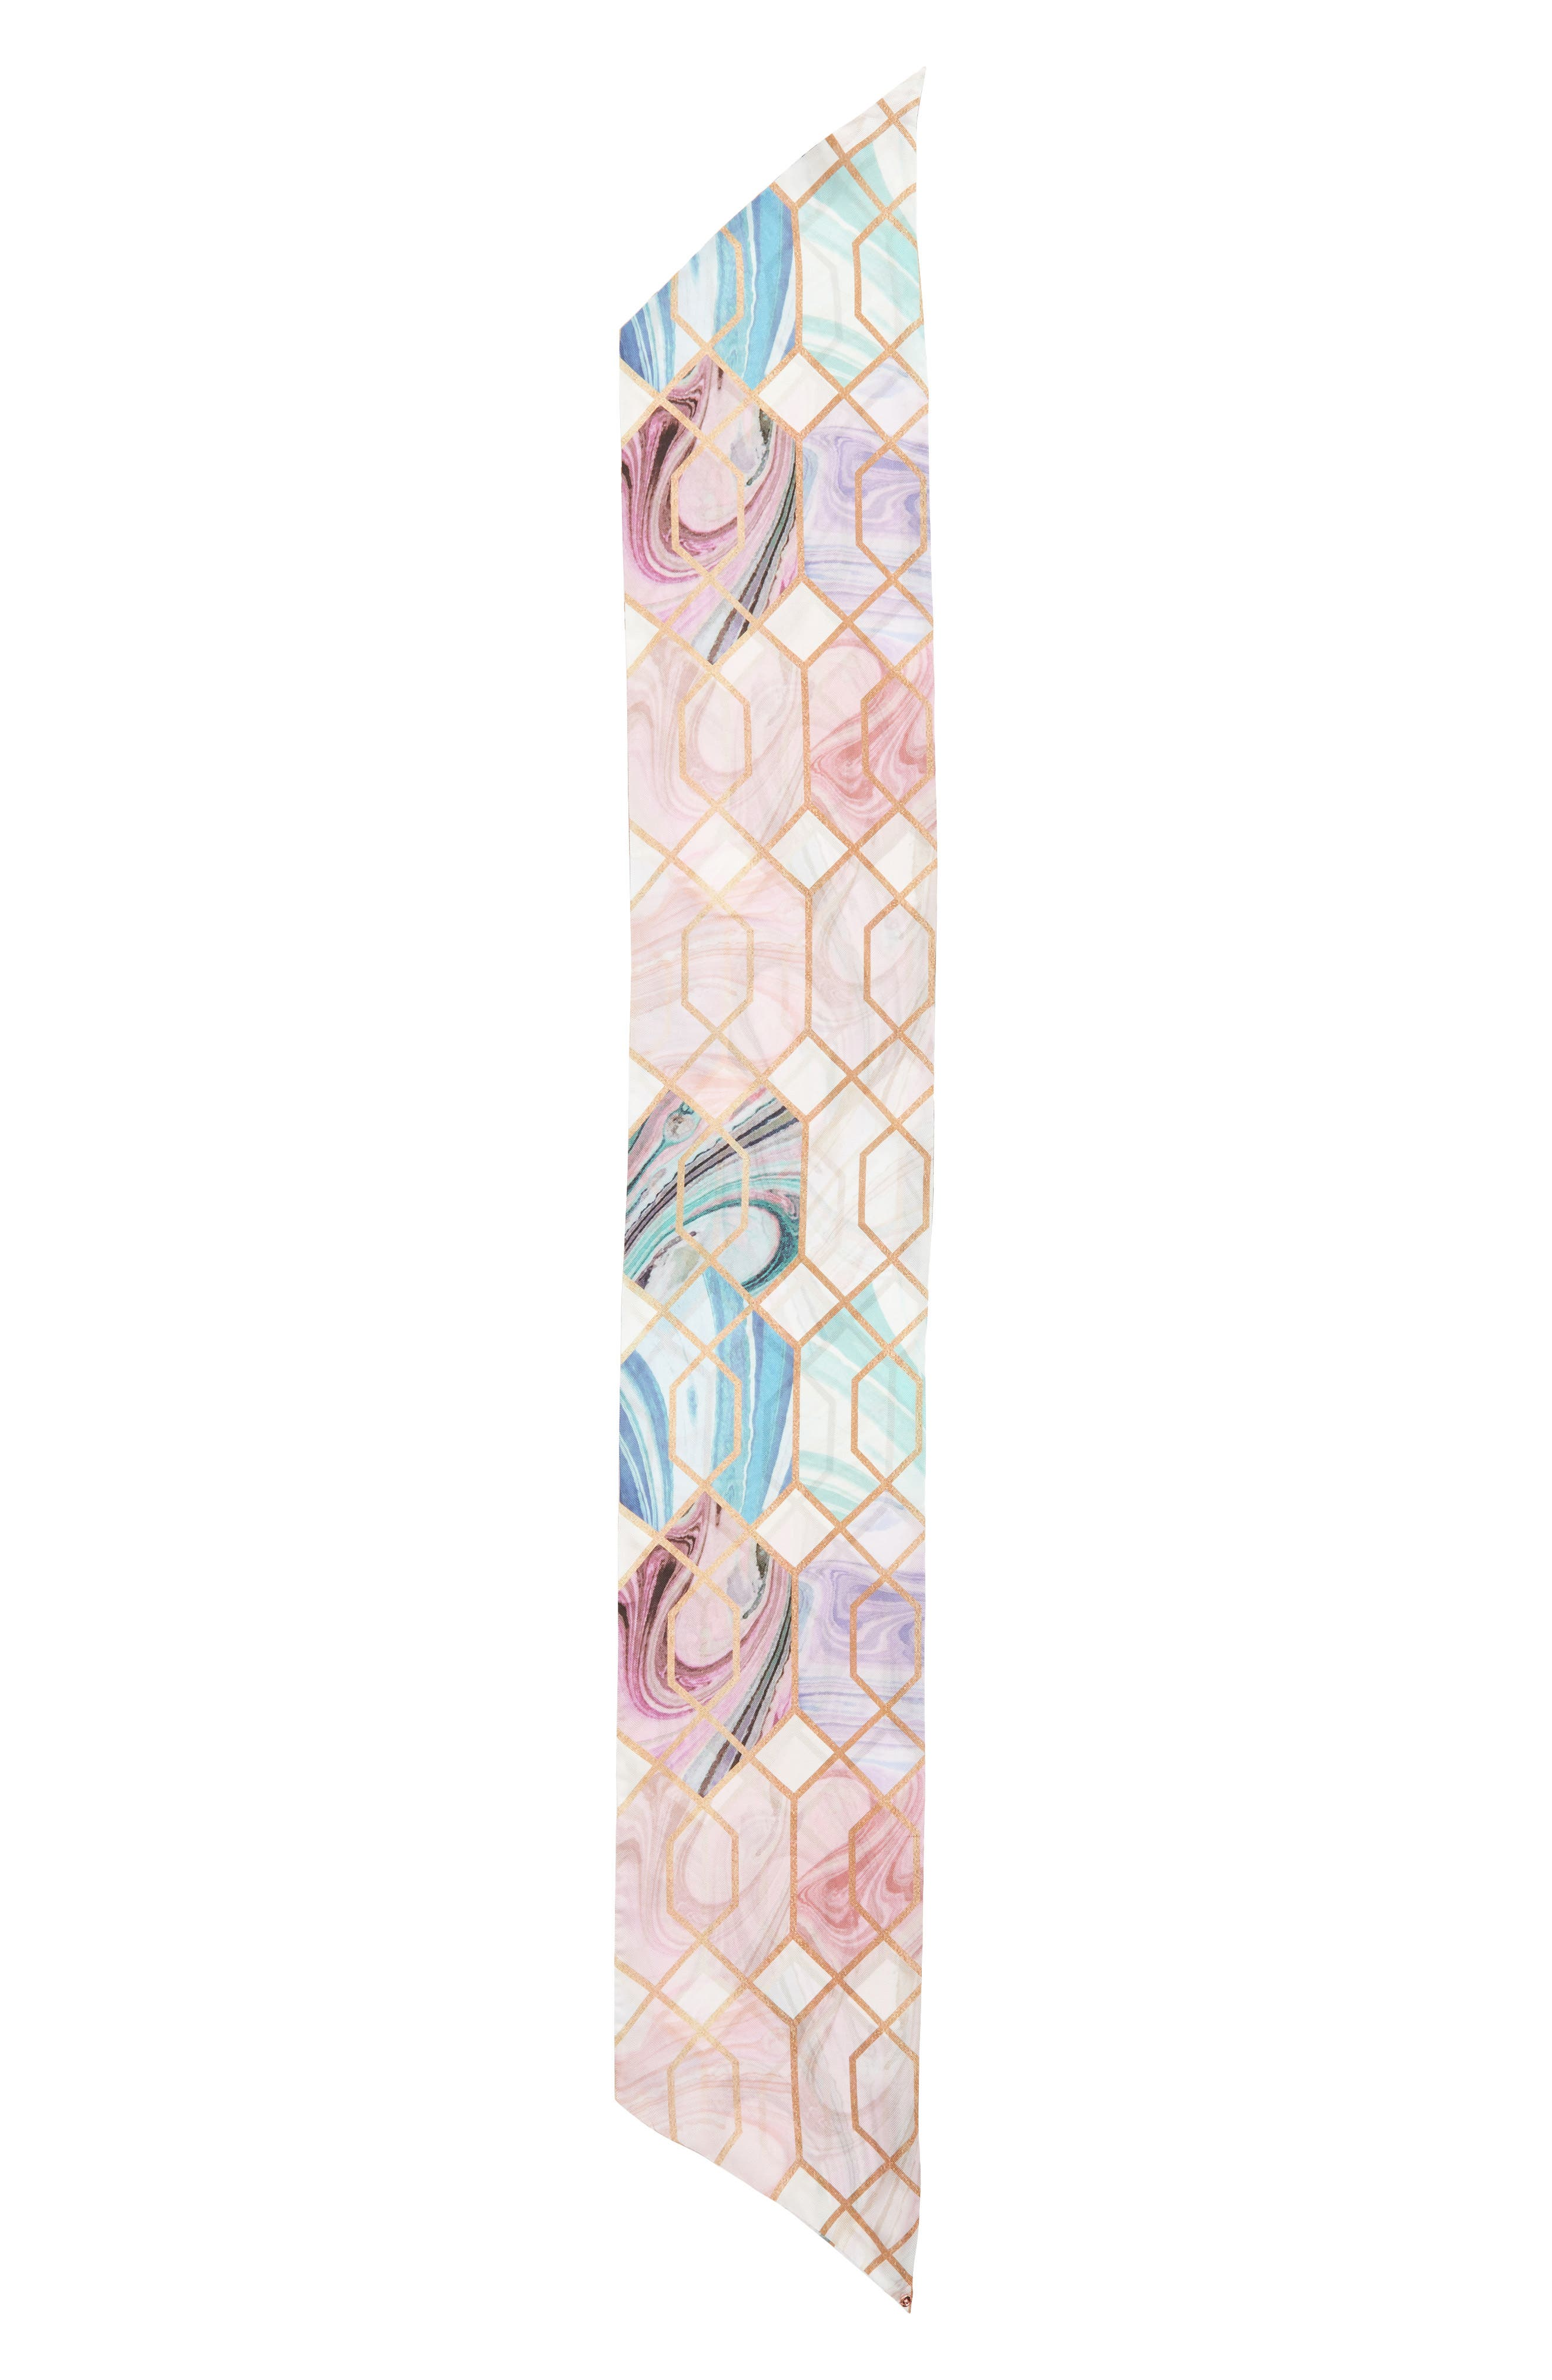 Adeelee - Sea of Clouds Silk Scarf,                             Alternate thumbnail 3, color,